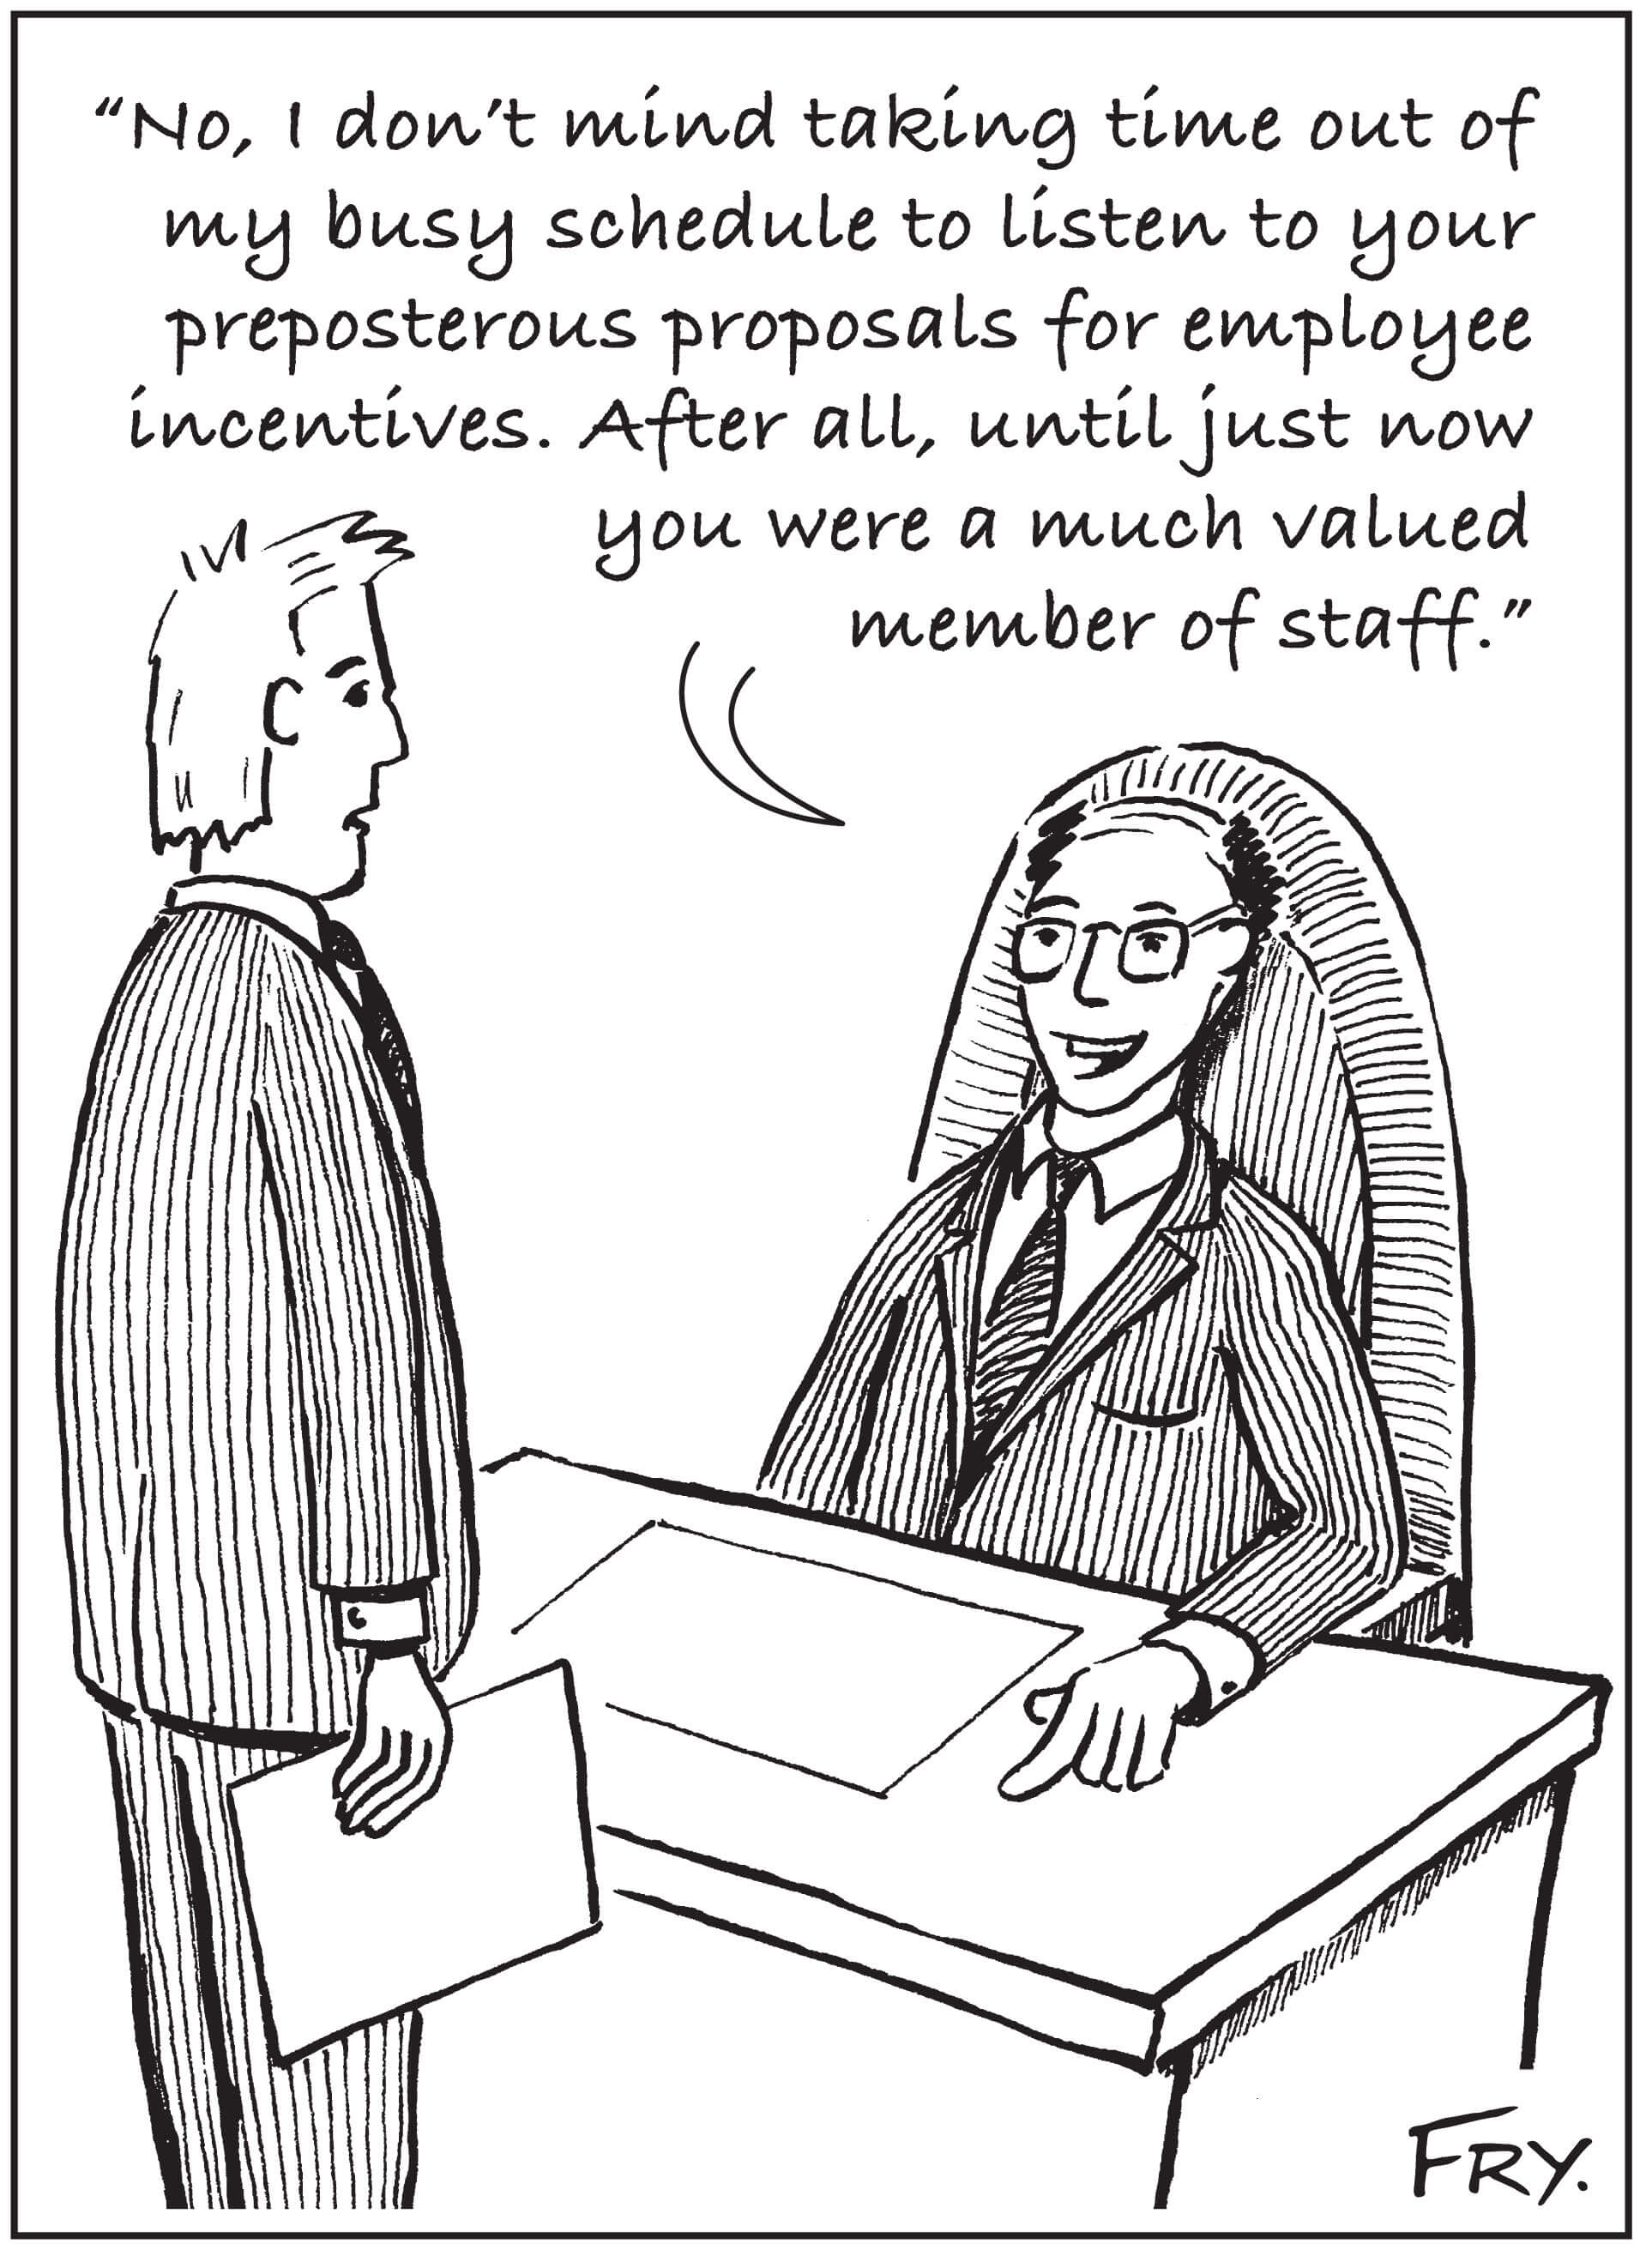 Employee Incentives Humor February 2014 Snowfly